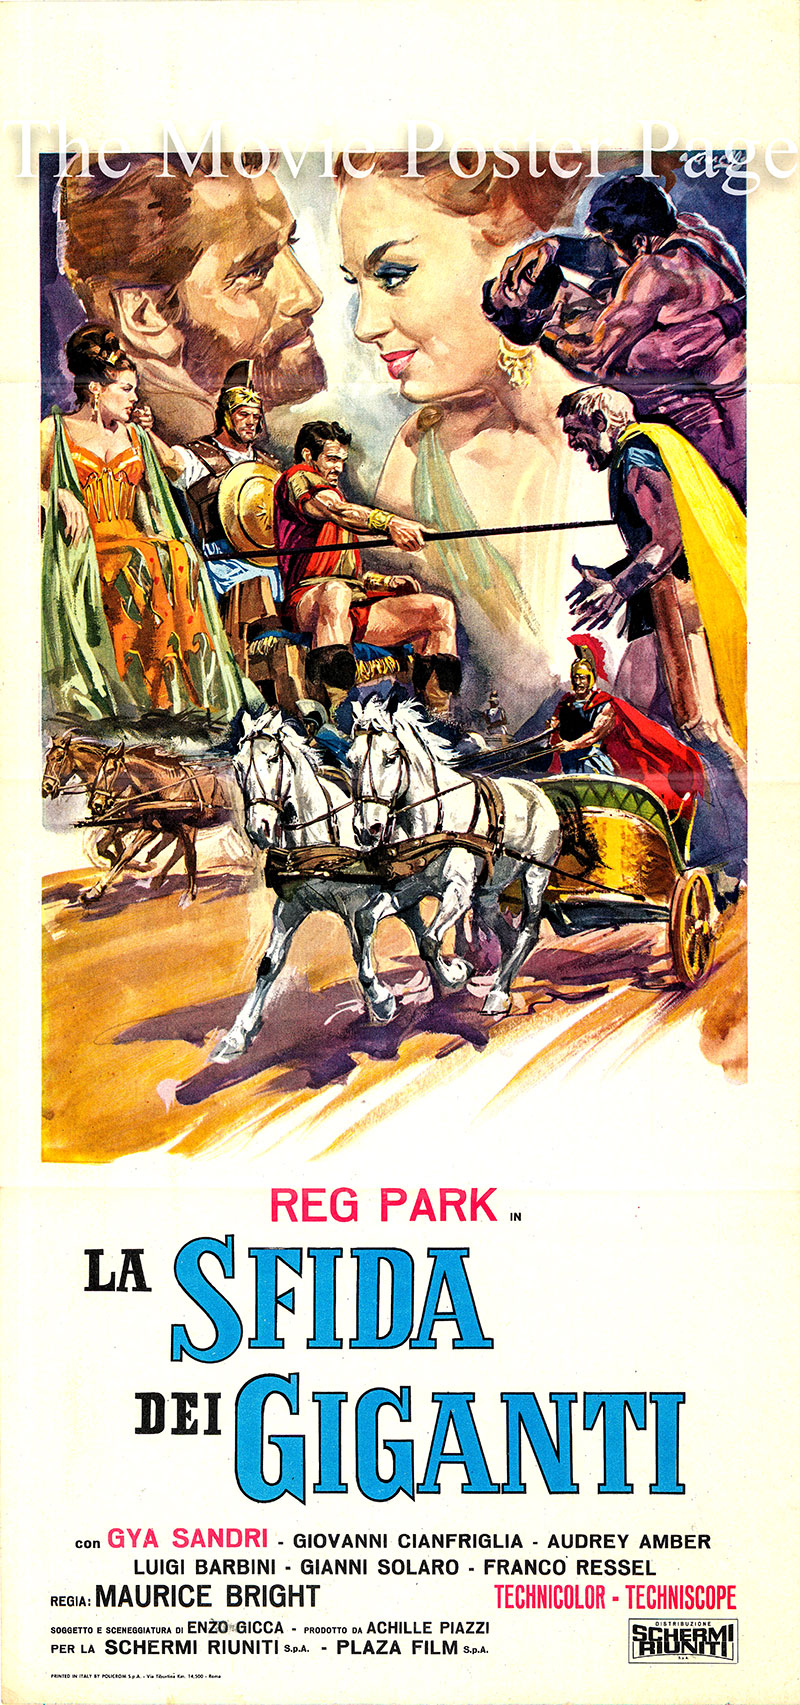 Pictured is an Italian locandina promotional poster for the 1965 Maurizio Lucidi film Hercules the Avenger, starring Reg Park.